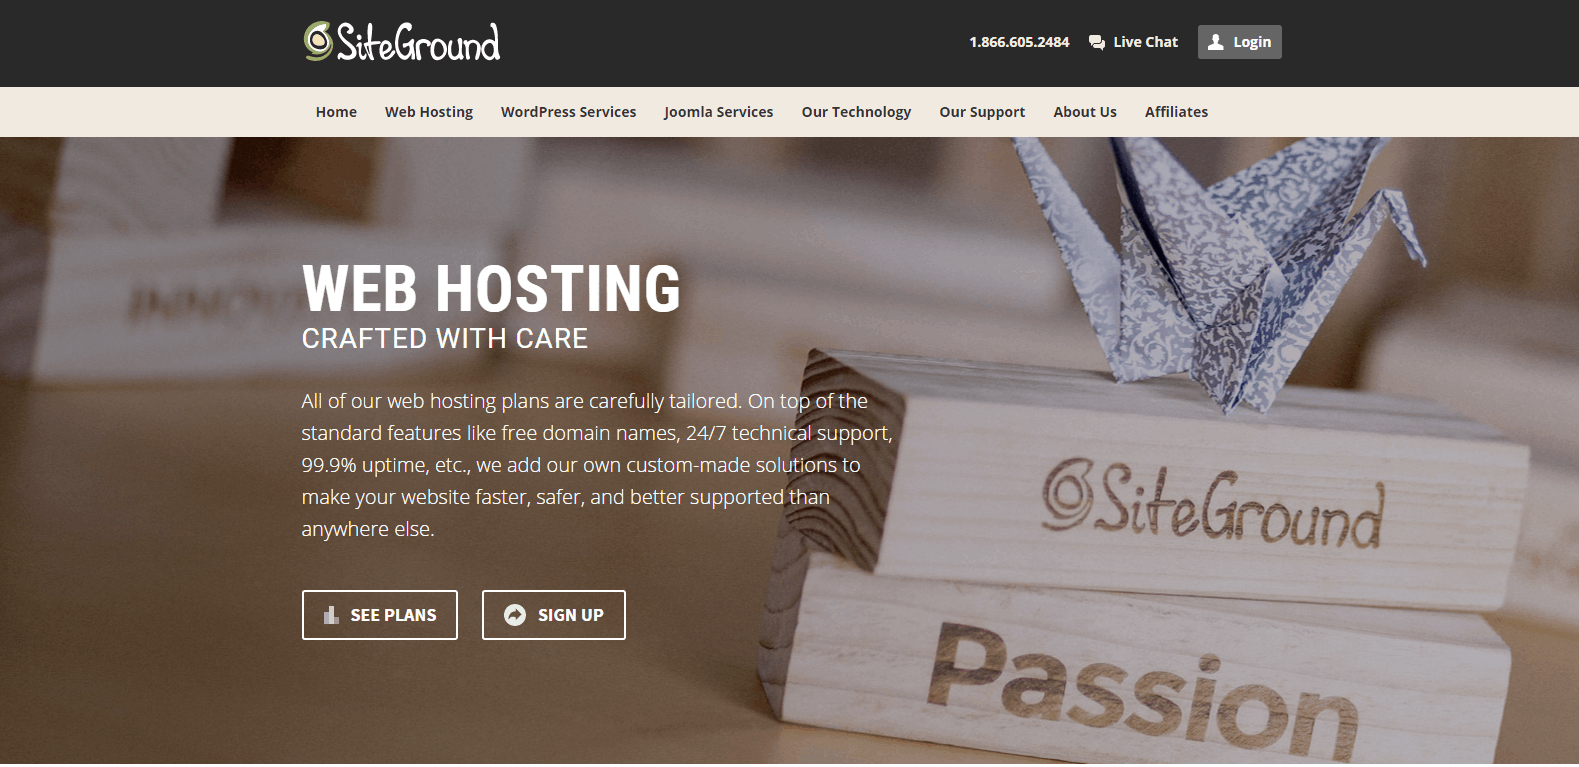 SiteGround Review | Hosting Plans, Support, Reliability & More